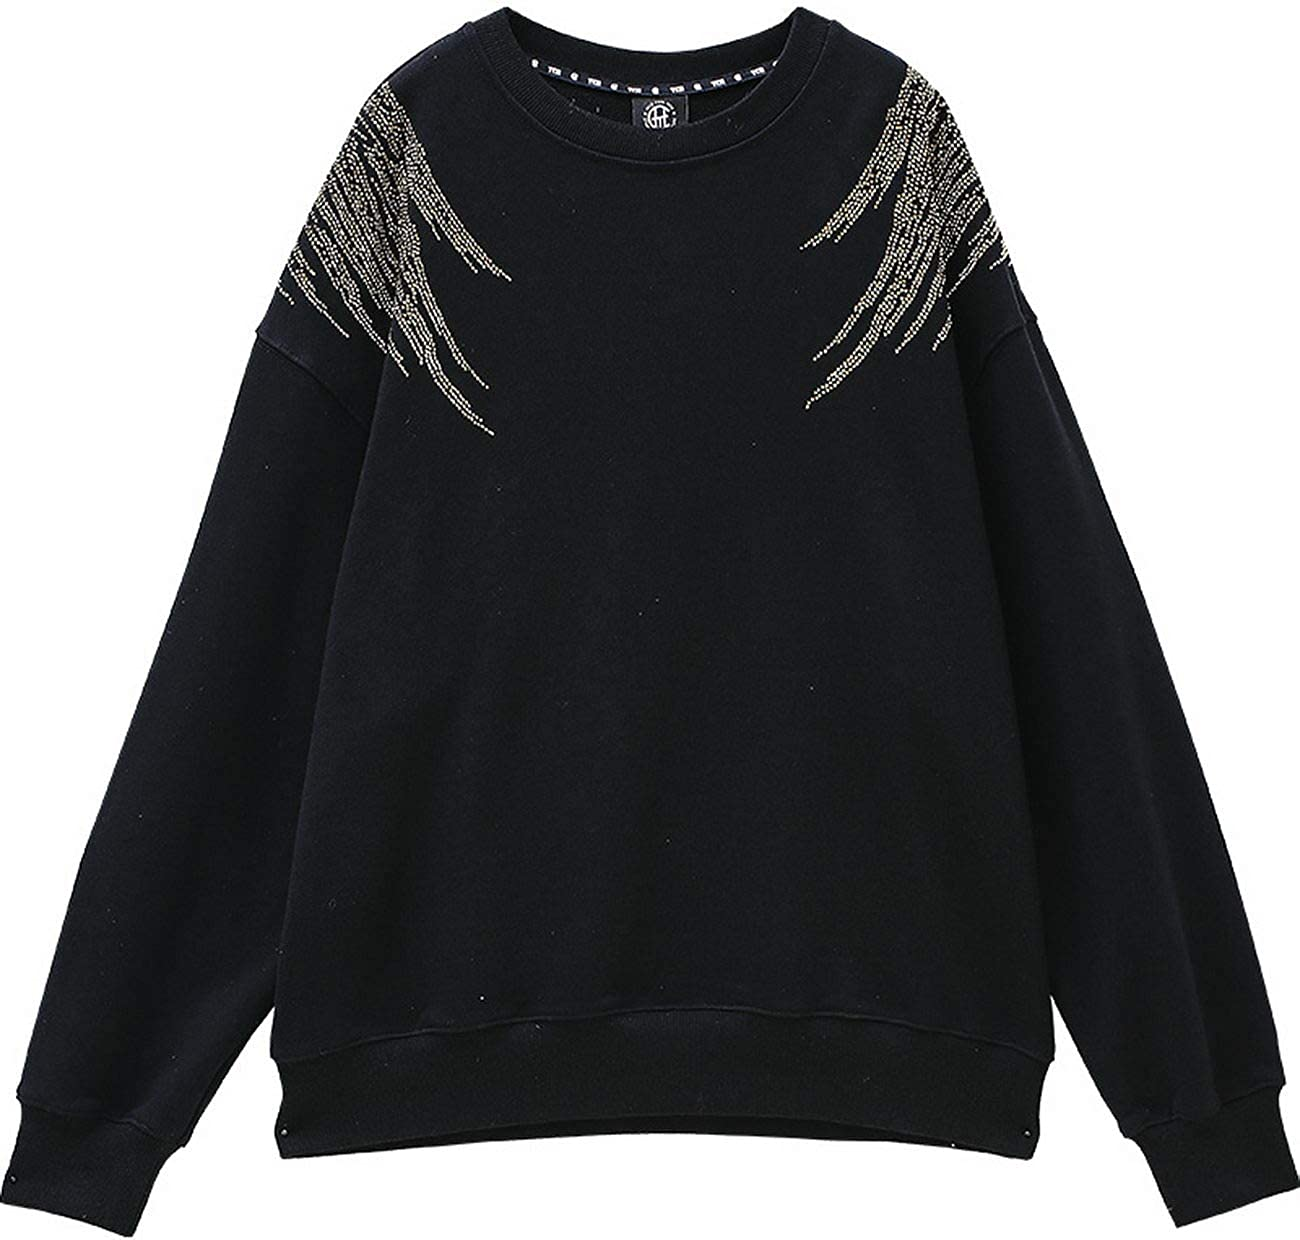 Light Luxury Tide Brand Big Wings hot Beads Loose Casual Sweater Men and Women T202116019